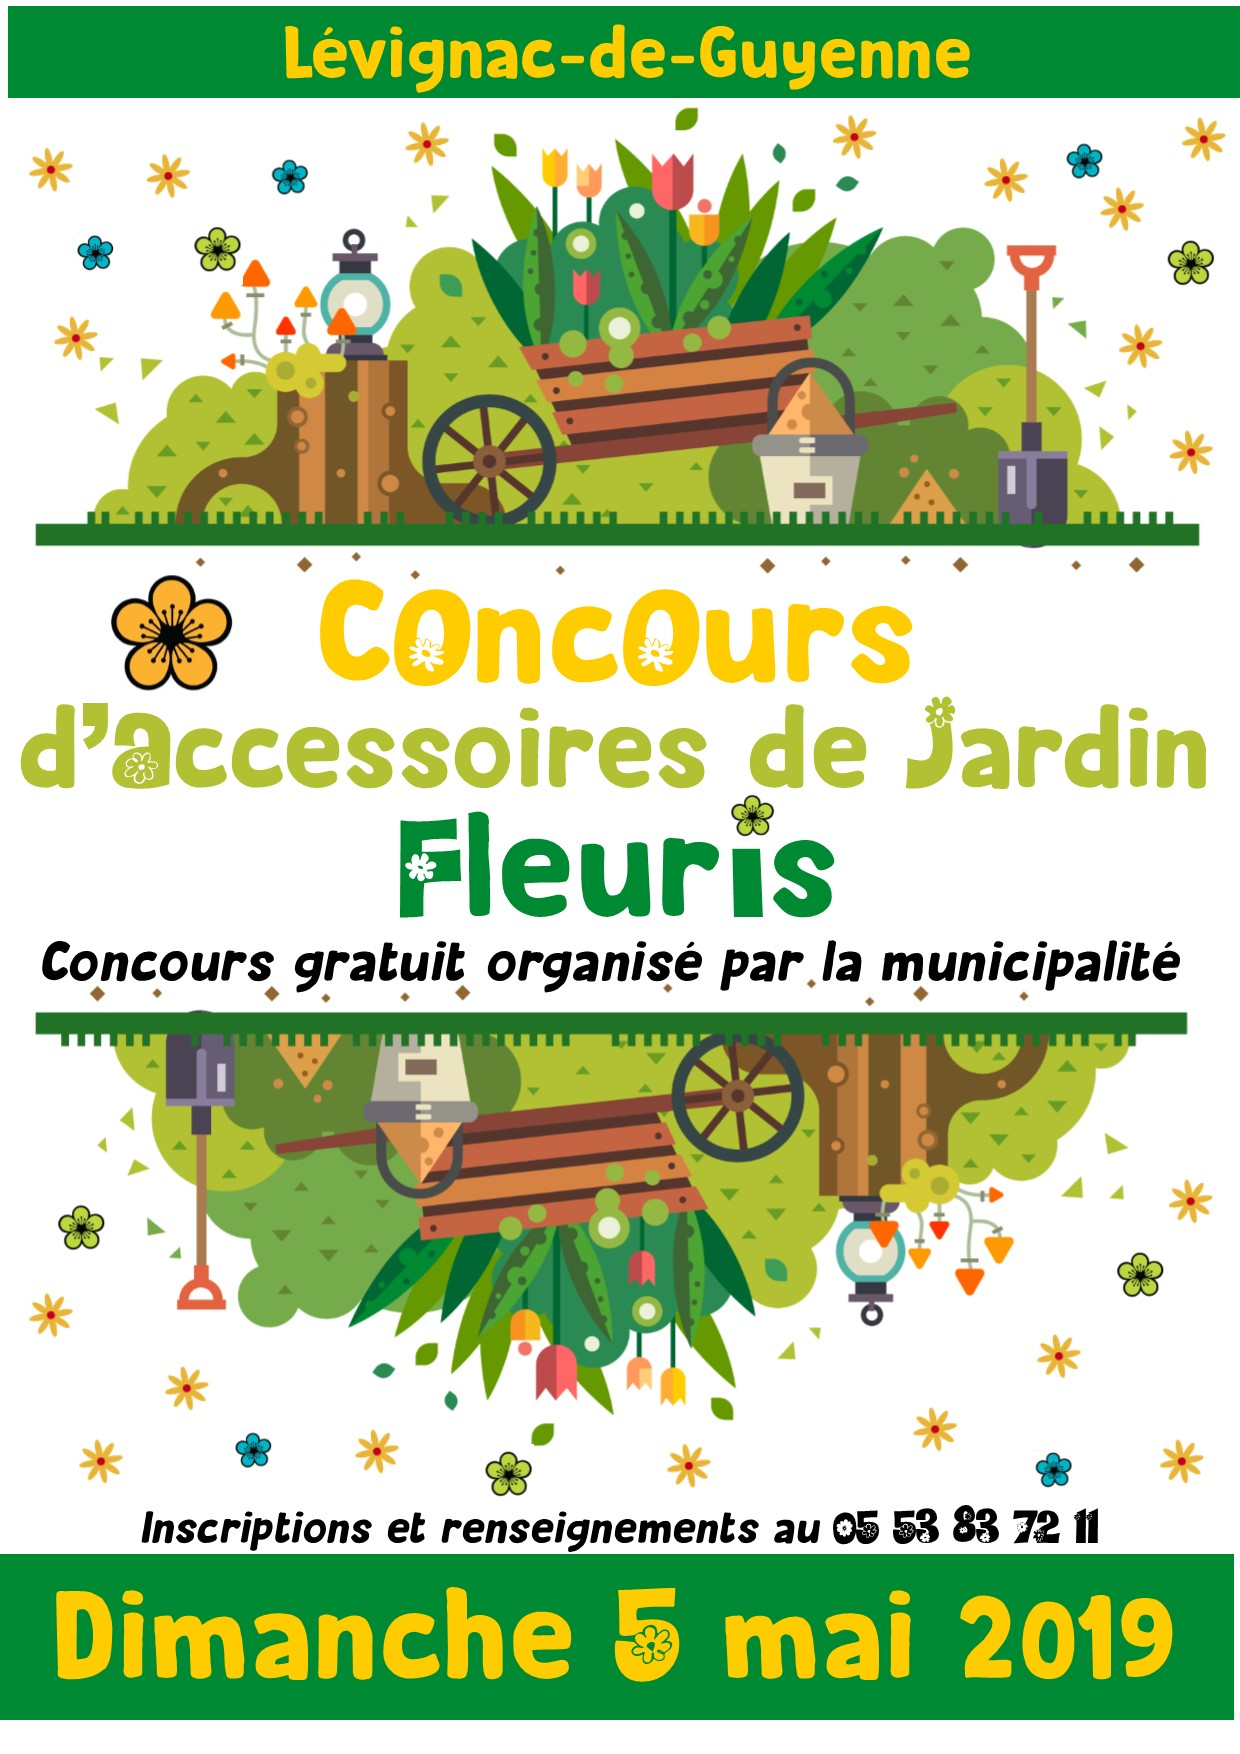 afficheduconcours f27a3